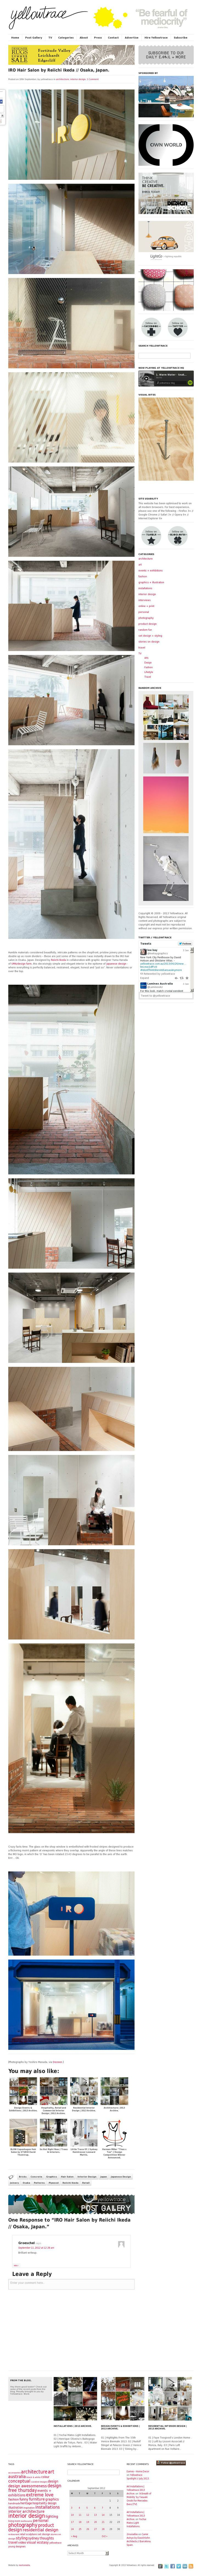 The website 'http://www.yellowtrace.com.au/2012/09/10/iro-hair-salon-by-reiichi-ikeda-osaka-japan/' courtesy of @Pinstamatic (http://pinstamatic.com)